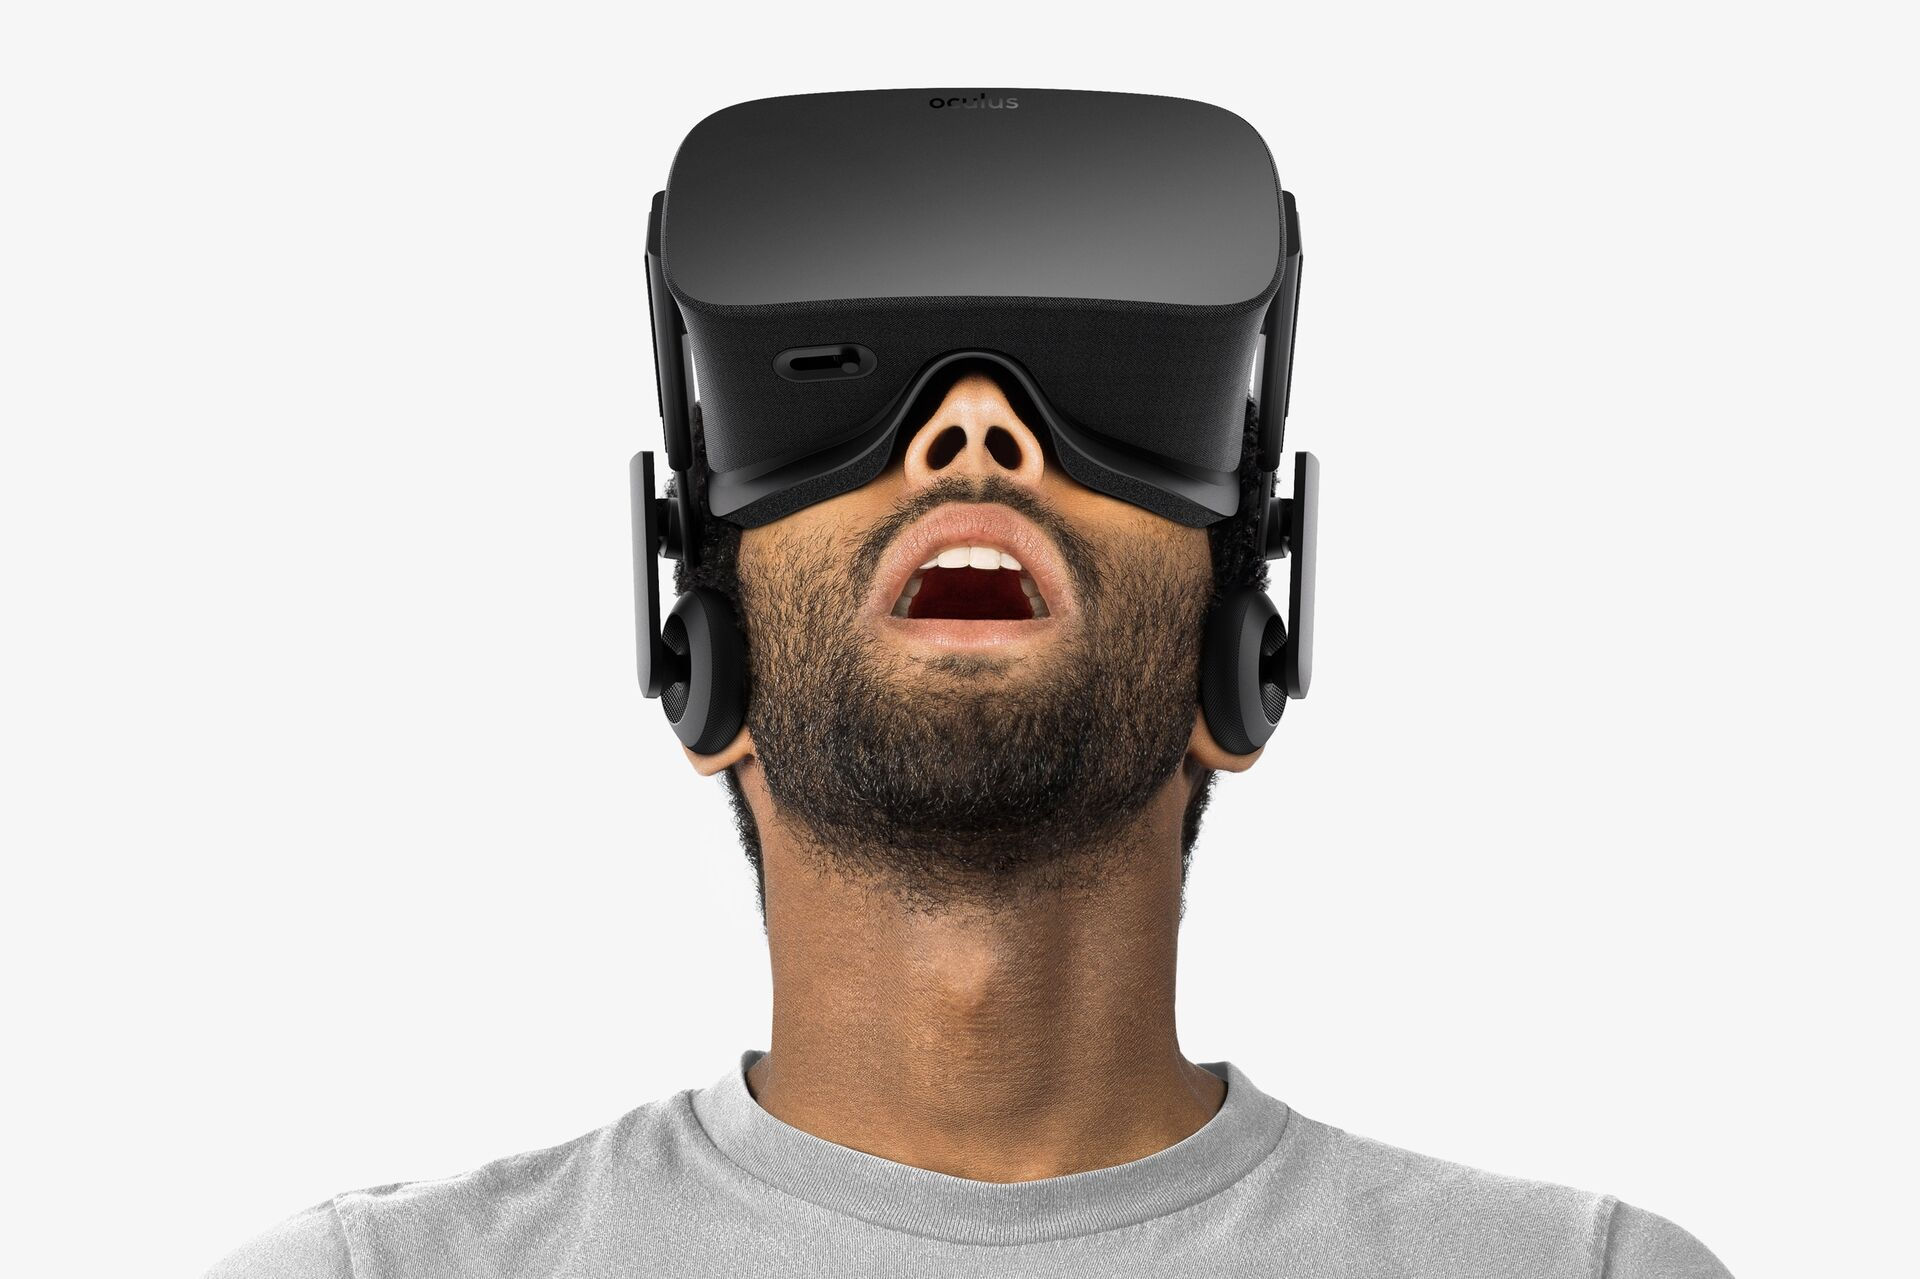 Oculus Rift headsets have reportedly stopped working across